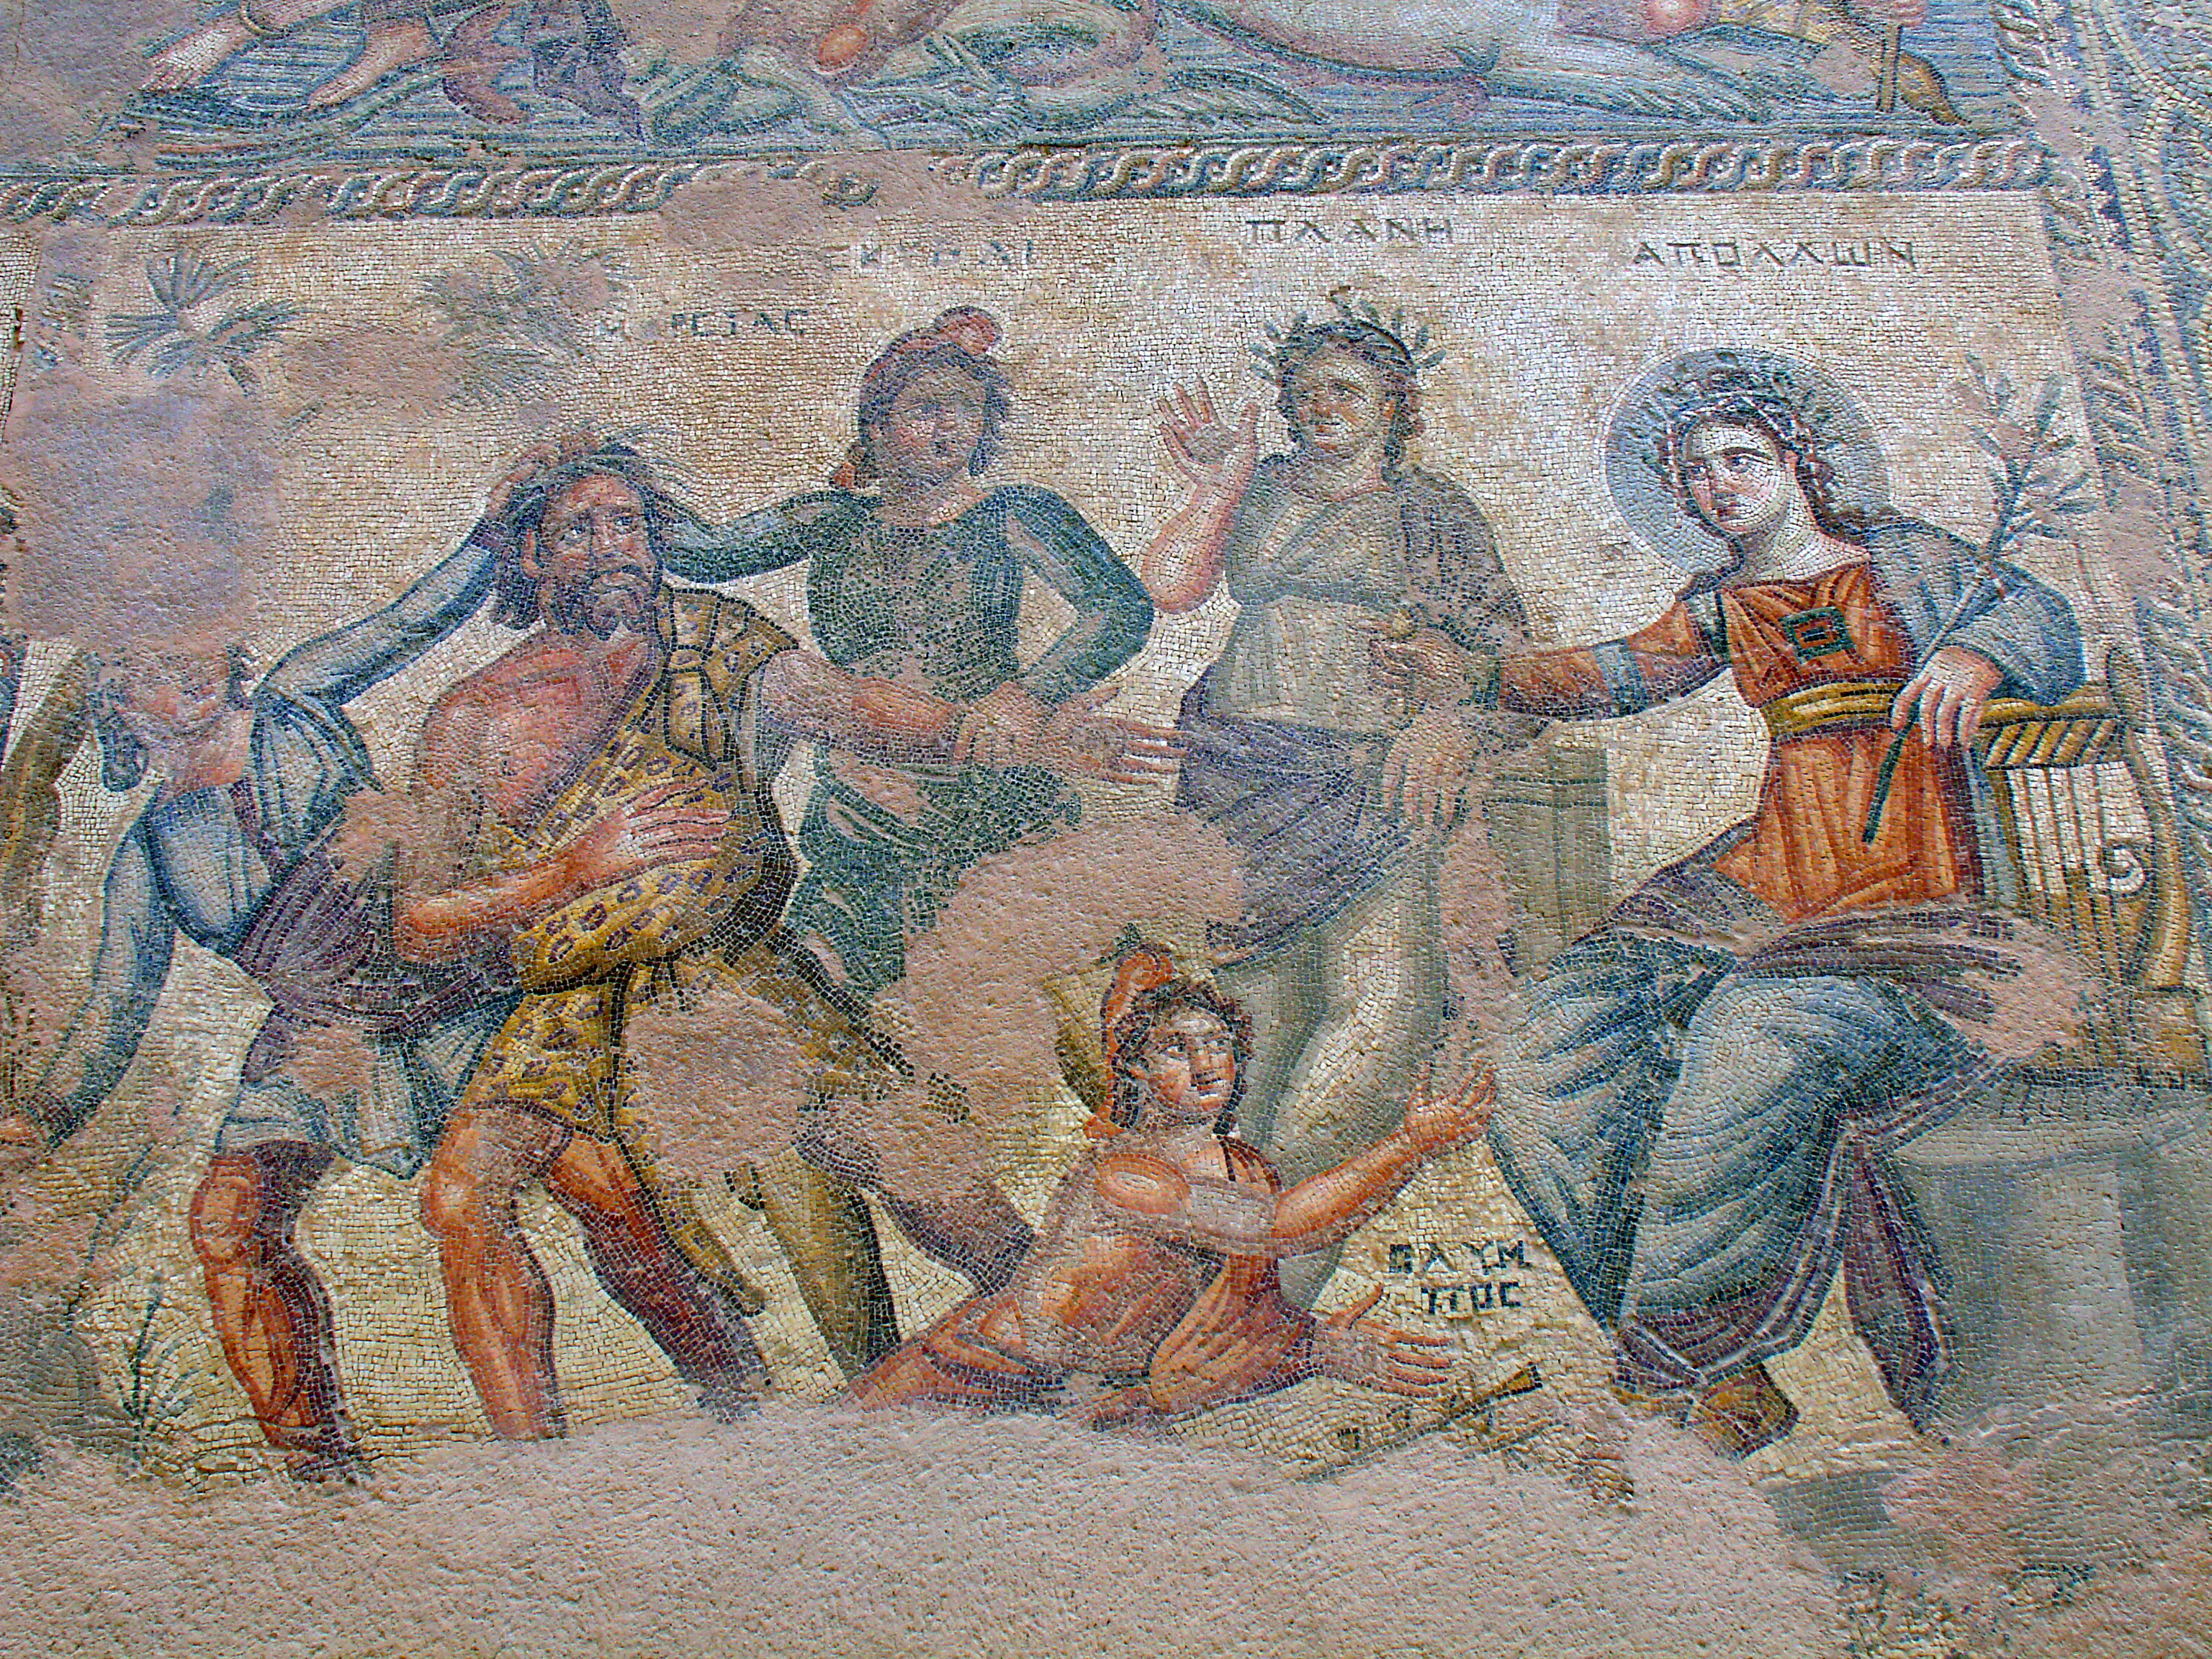 Houses_of_Dionysos_Mosaic,_Paphos